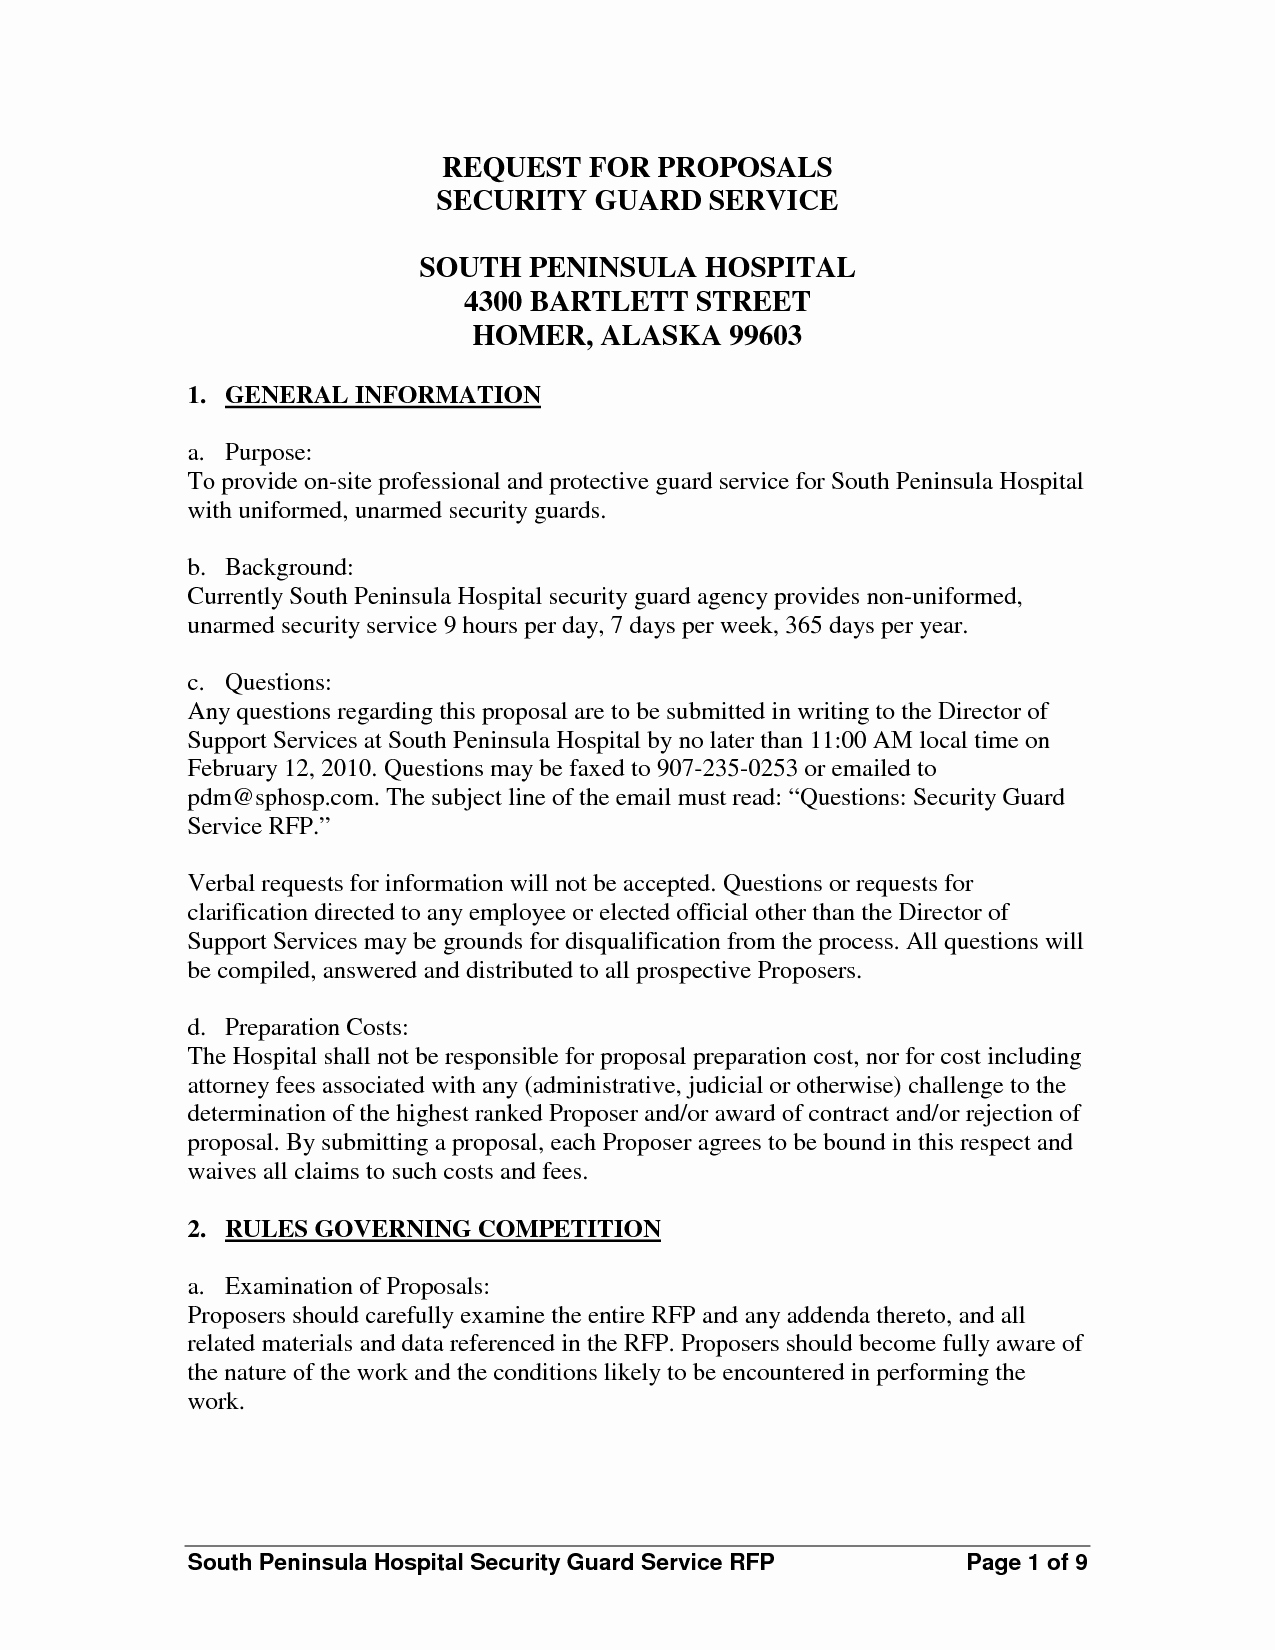 Cover Letter format Uf Beautiful Film Study thesis Creative Writing Online Group Civil